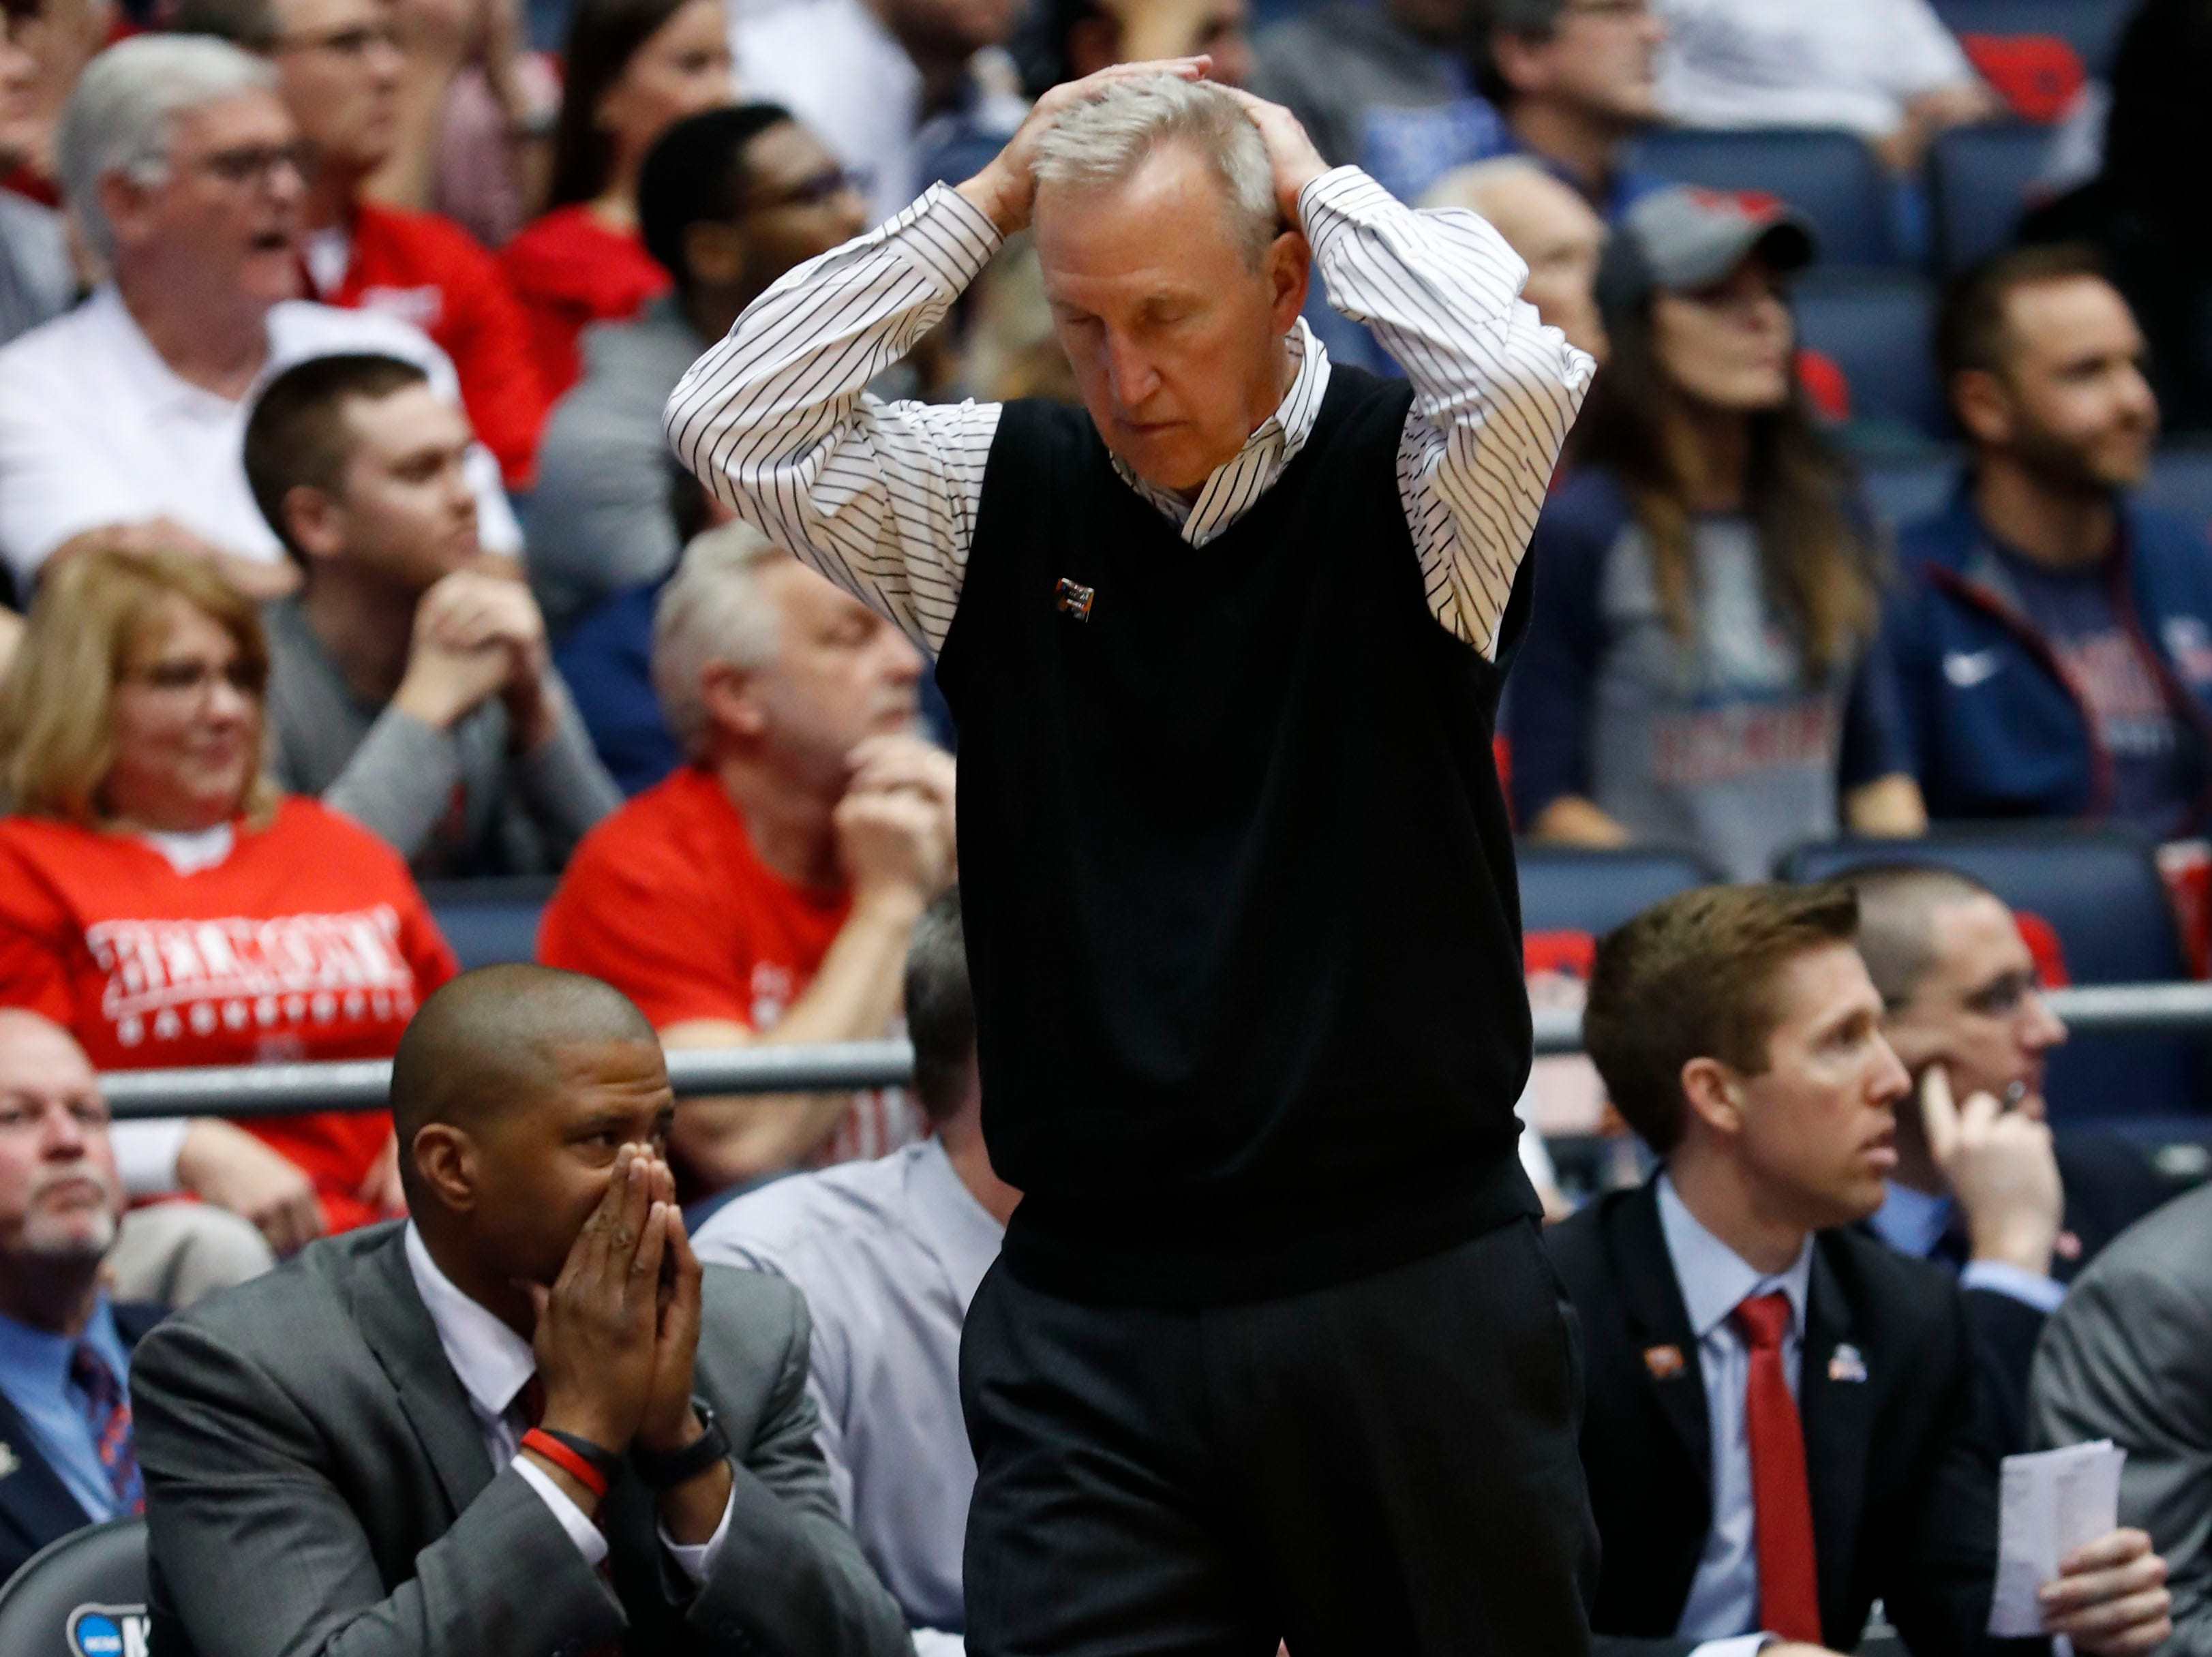 Belmont Bruins head coach Rick Byrd reacts to a play in the second half against the Temple Owls. He picked up his first NCAA tournament win.